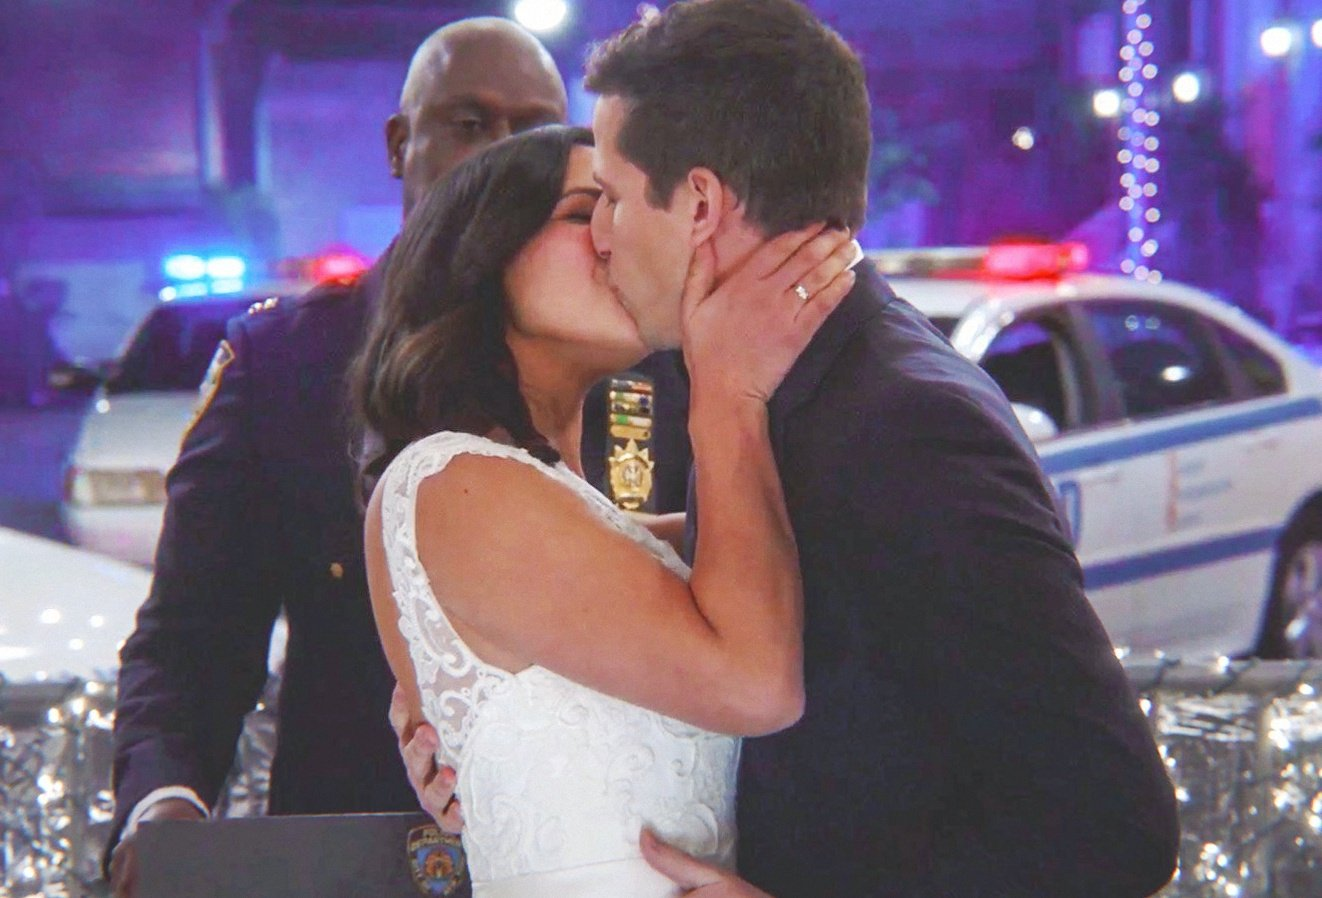 Nessa On Twitter Do You Amy Santiago Take Jake Peralta To Be Your Husband I Do And Do You Jake Peralta Take Amy Santiago To Be Your Wife I Absolutely Do Happy